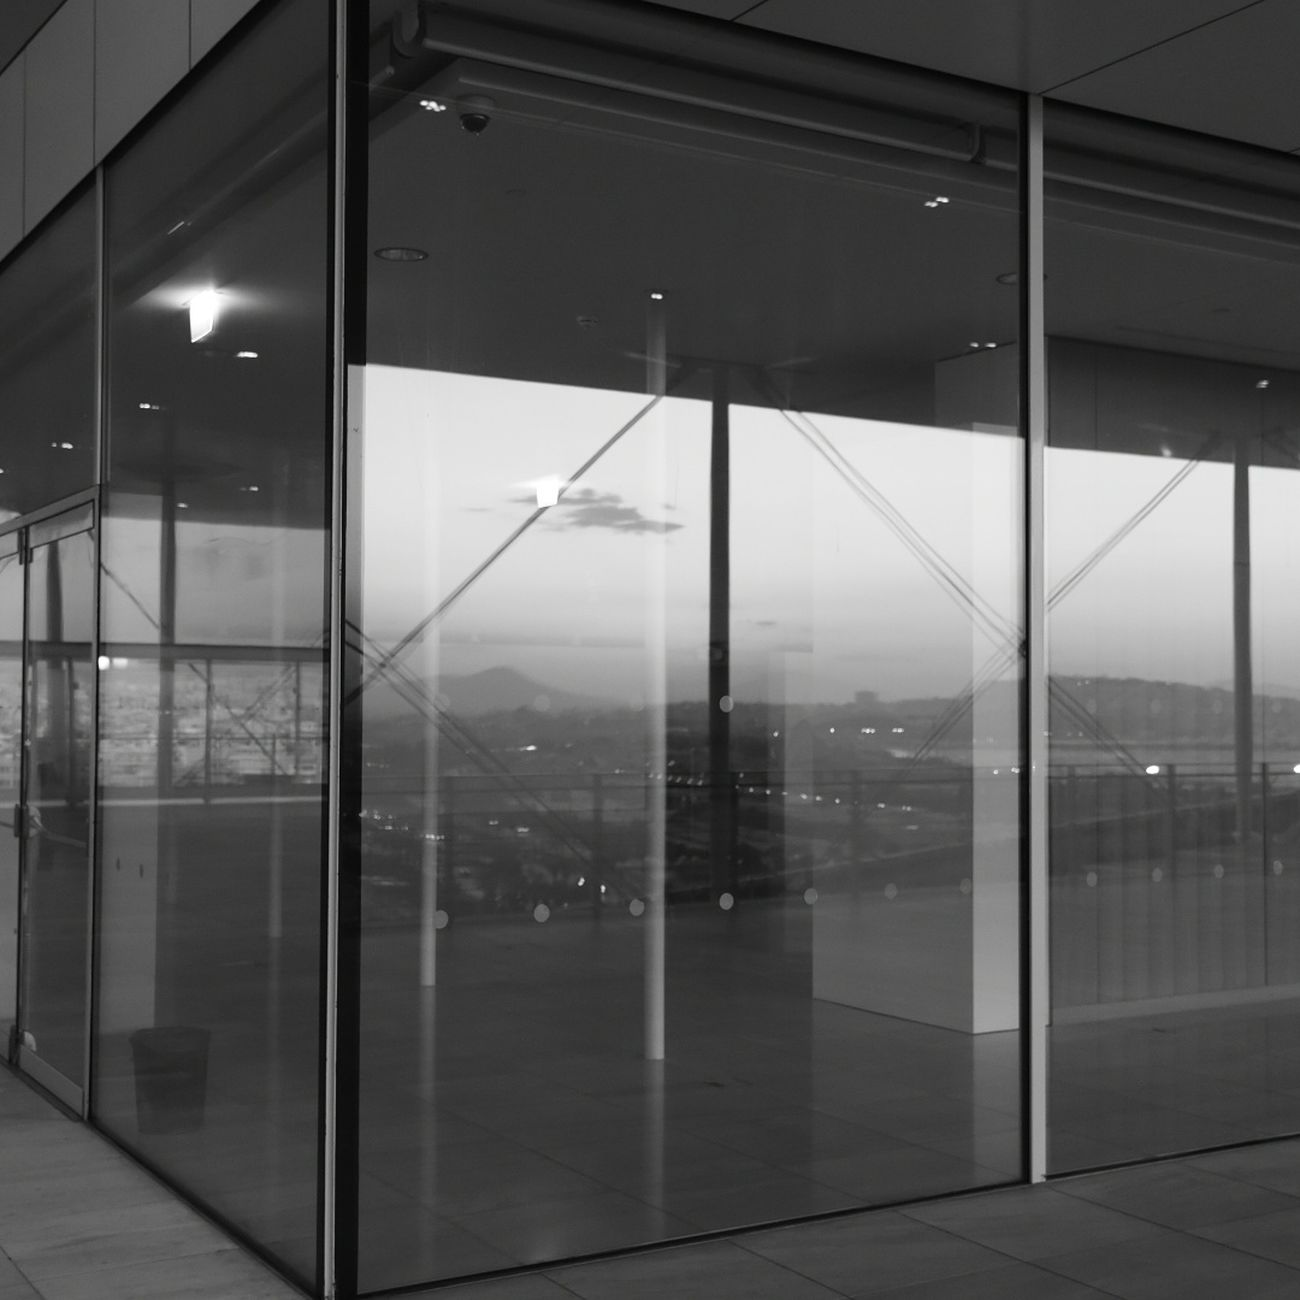 Glass - Material Business Finance And Industry Modern Office Indoors  Architecture No People Door Steel Sliding Door Built Structure Window Business City Skyscraper Technology Futuristic Cityscape Day